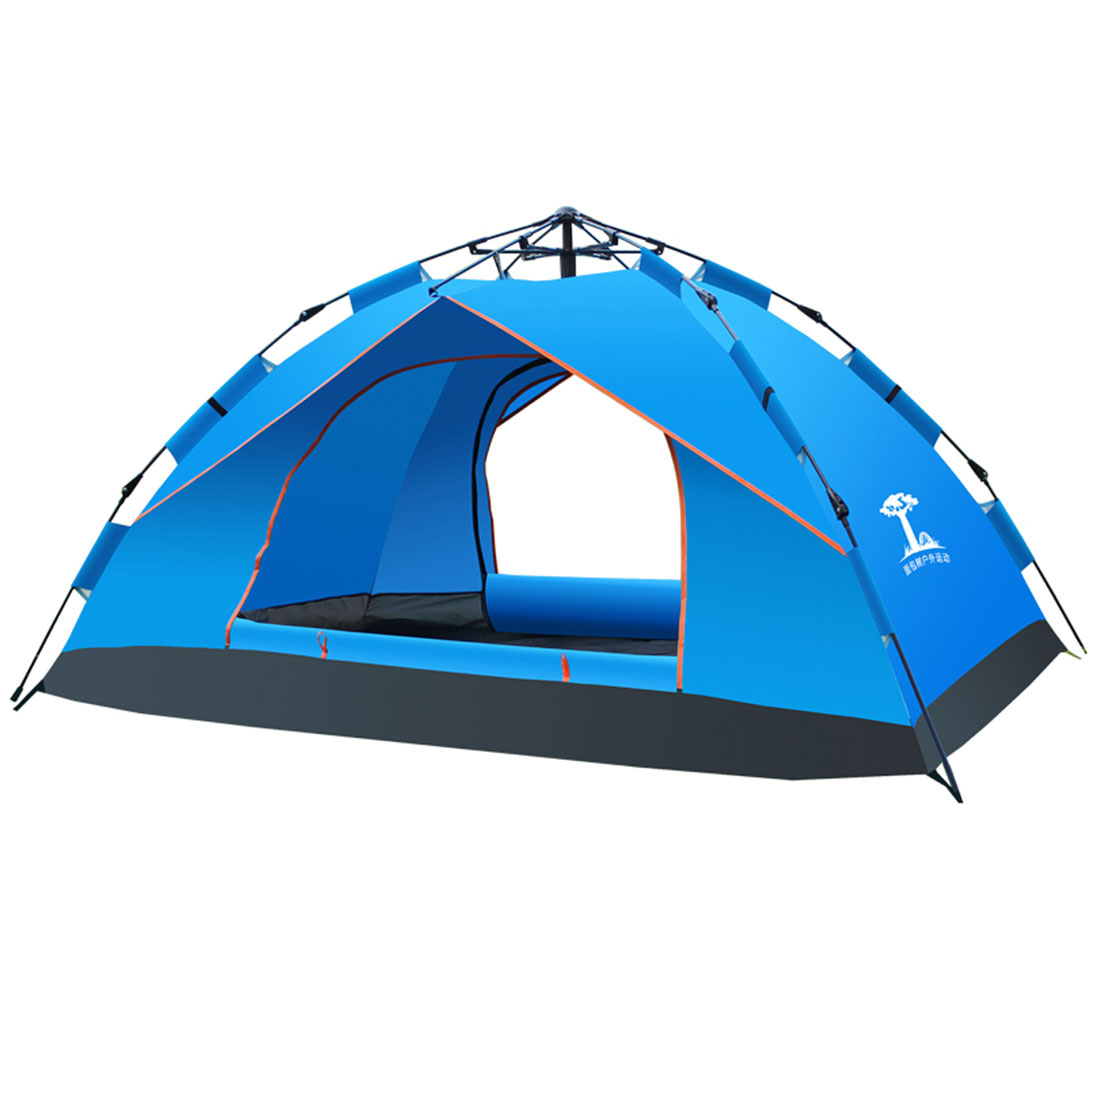 3-4 Person Automatic Easy Pitch Pop Up Portable C&ing Backpacking Dome Tent - Walmart.com  sc 1 st  Walmart & 3-4 Person Automatic Easy Pitch Pop Up Portable Camping ...